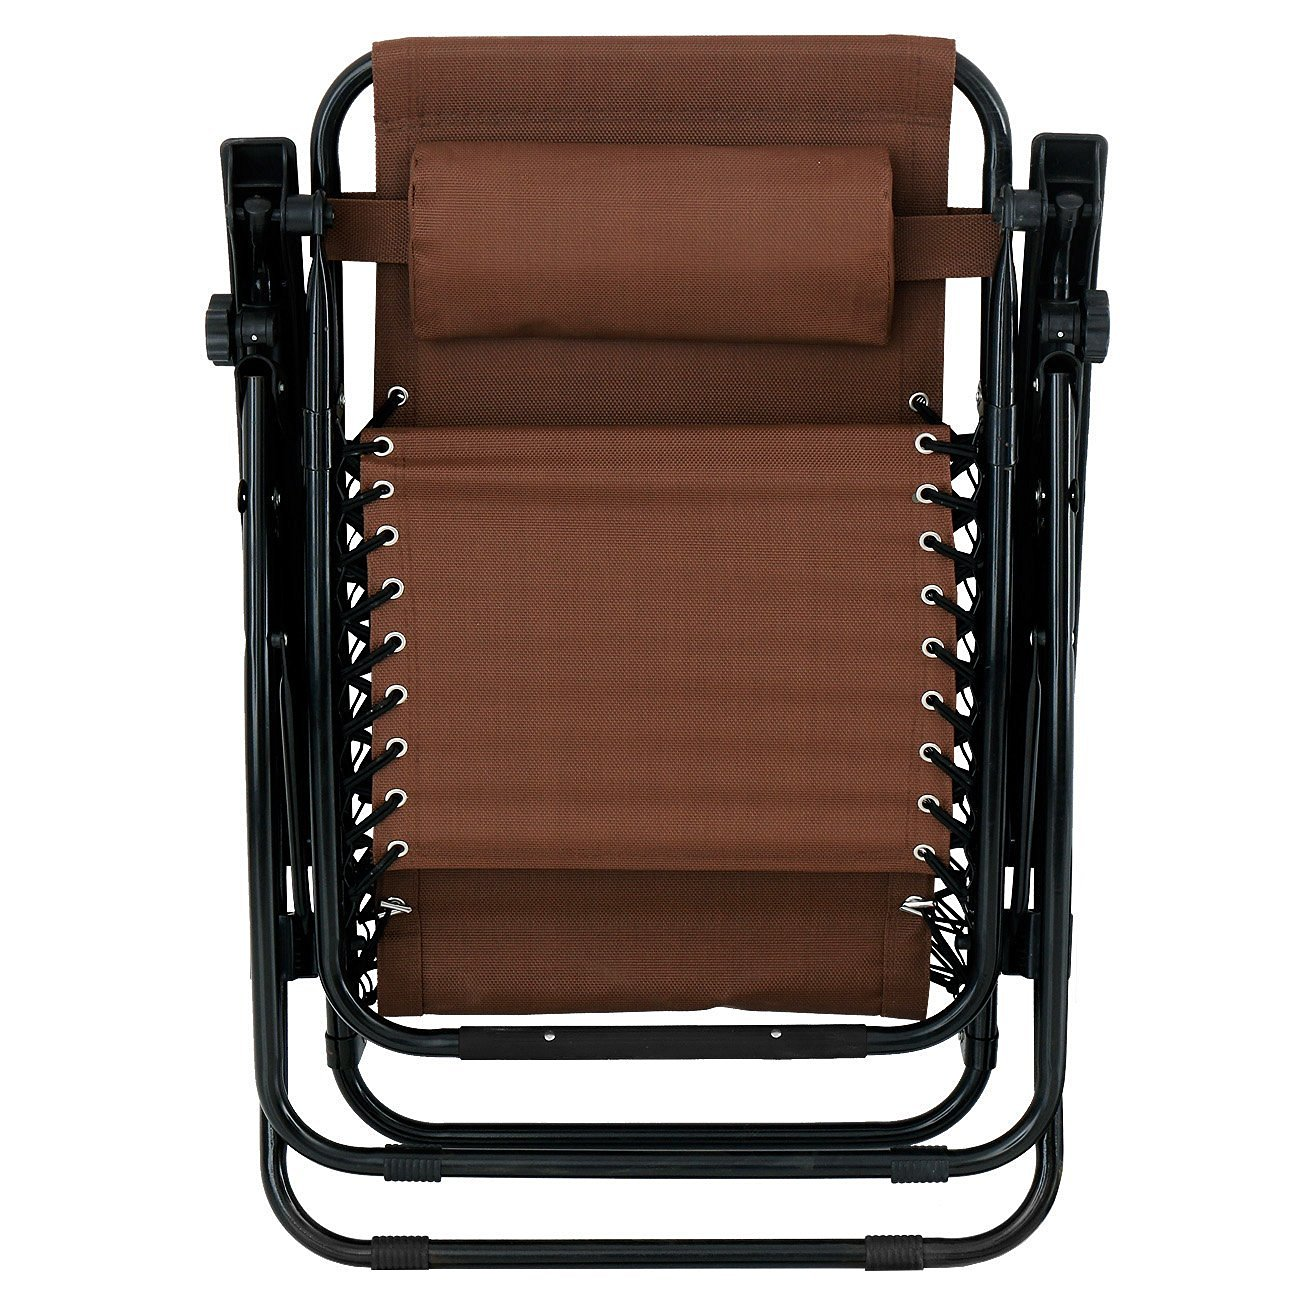 Bellezza Pack Zero Gravity Chairs Patio Lounge Cup Holder Utility Tray Brown on Caravan Sports Infinity Zero Gravity Chair